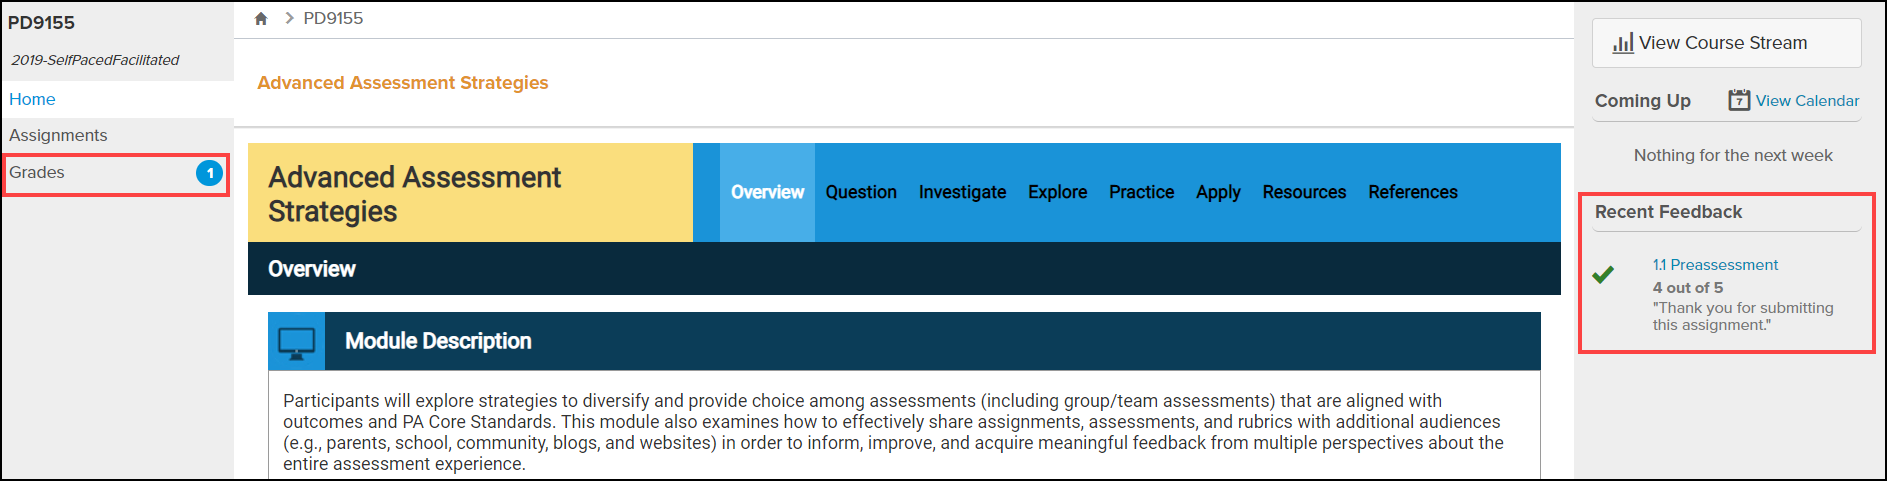 course page with grades and recent feedback highlighted